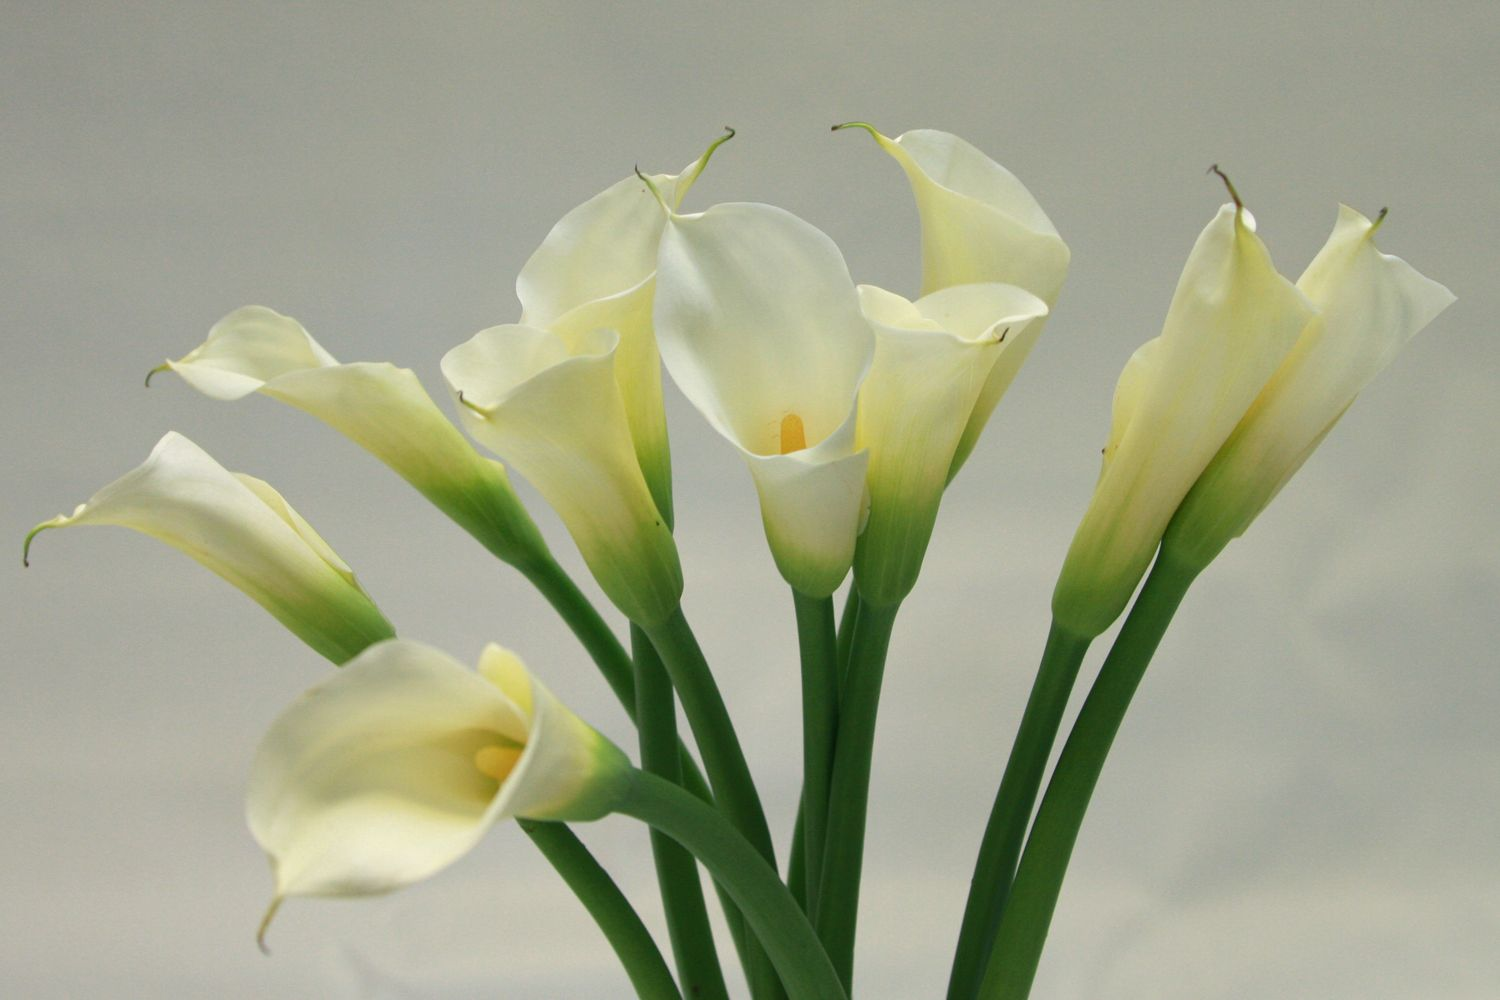 Flowering facts calla lilies calla lilies lilies flowers and flowers calla lily flowers the elegant calla lily has been the muse of artists for centuries izmirmasajfo Image collections